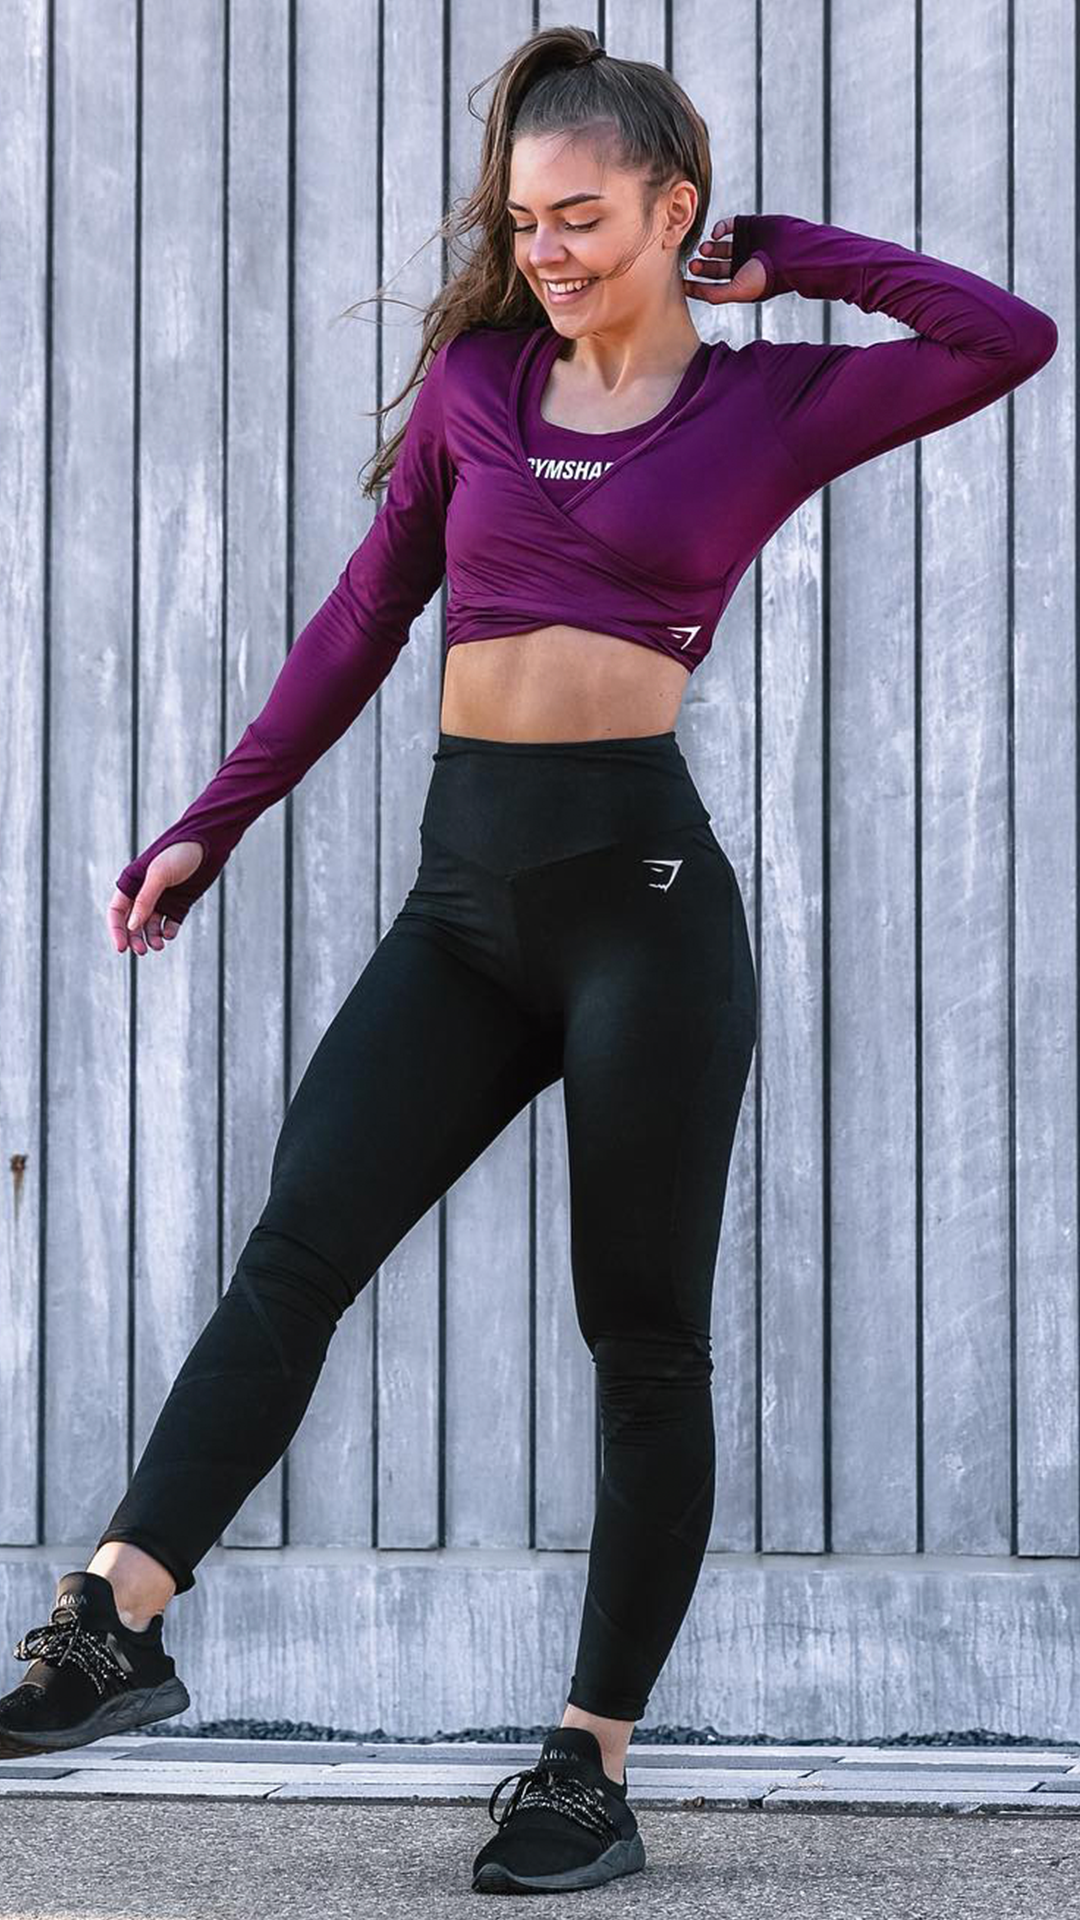 0062268fe57ef Mix n match with a Ruby Ballet Crop Top and Ruby Ark Sports Bra with the  Dreamy Black Leggings.  Gymshark  Gym  Sweat  Train  Perform  Seamless   Exercise ...